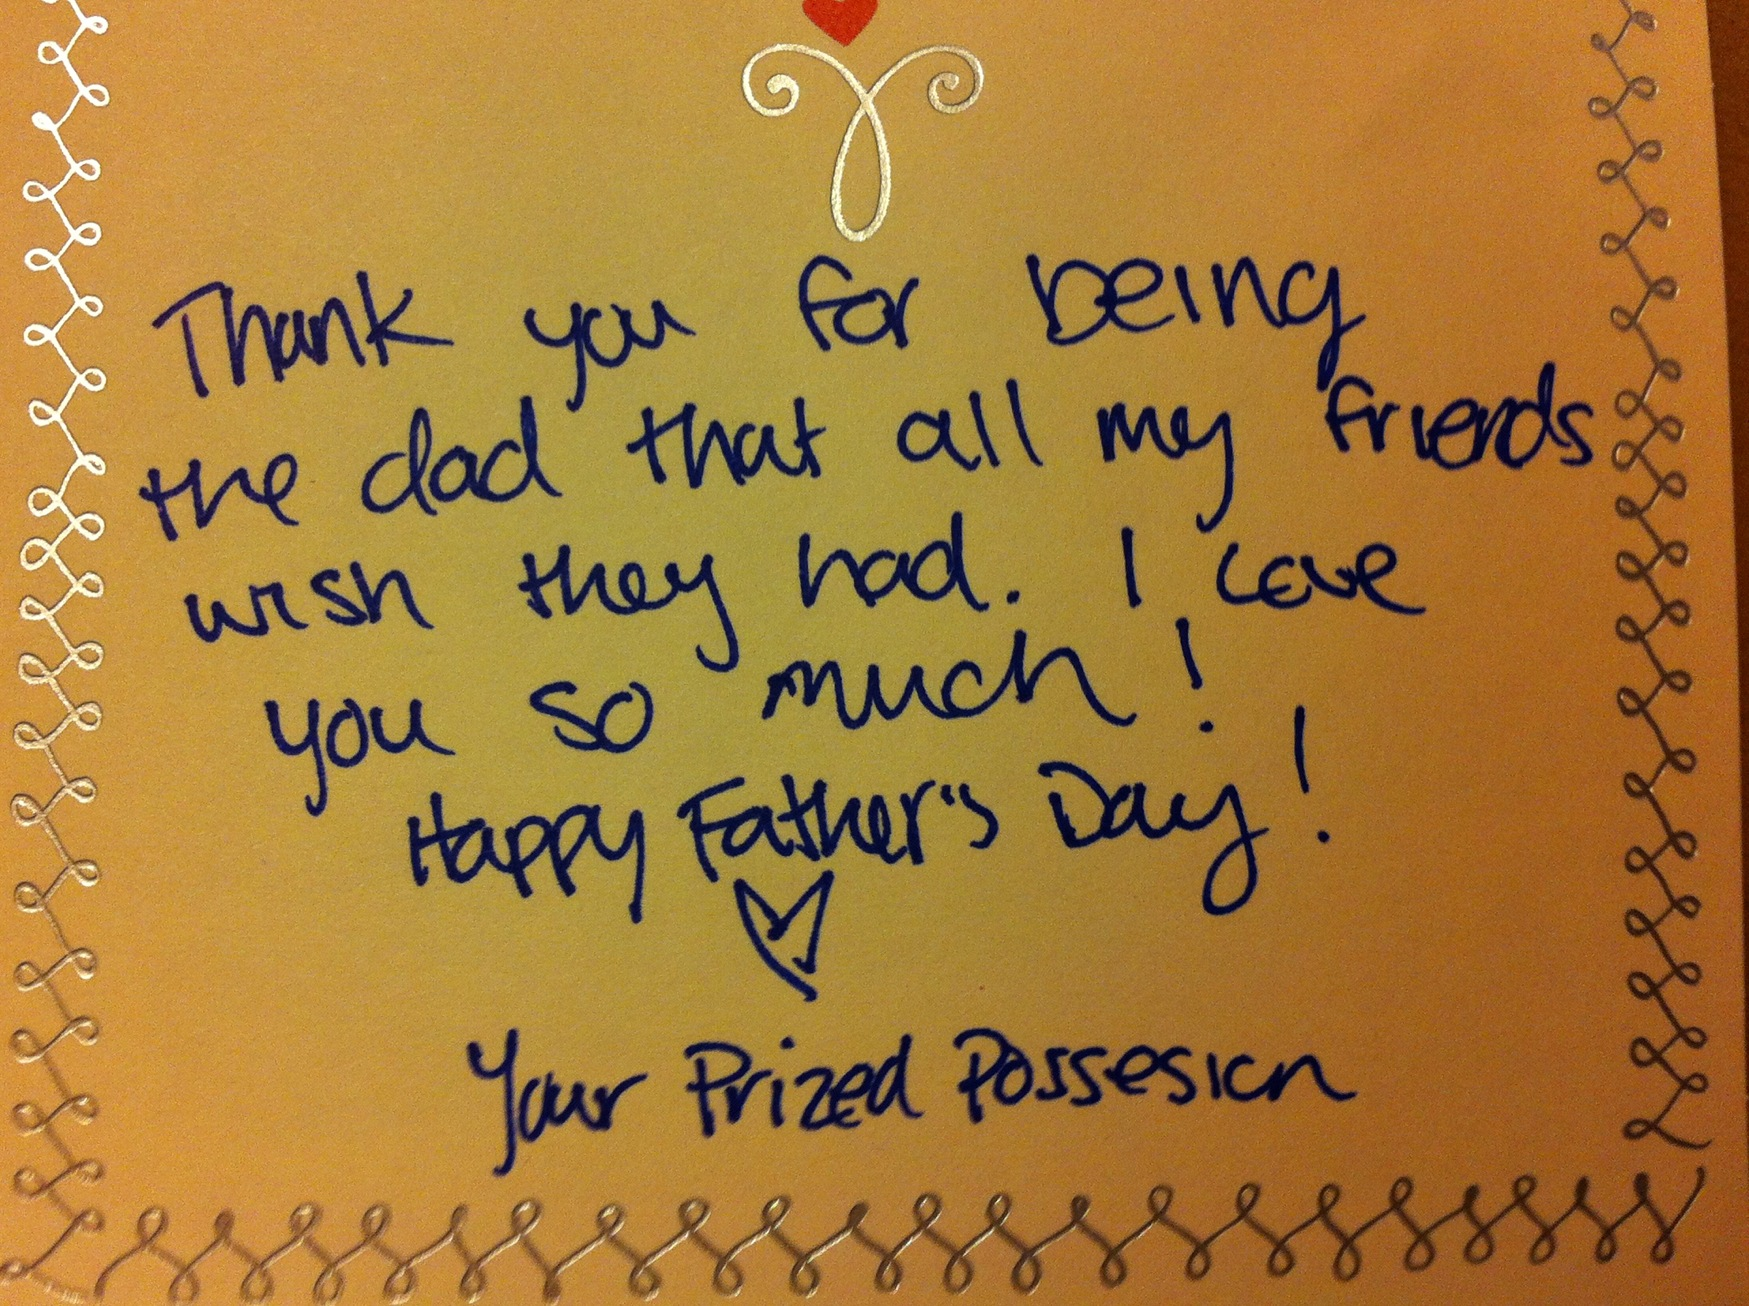 Happy Fathers Day Poems from Daughter